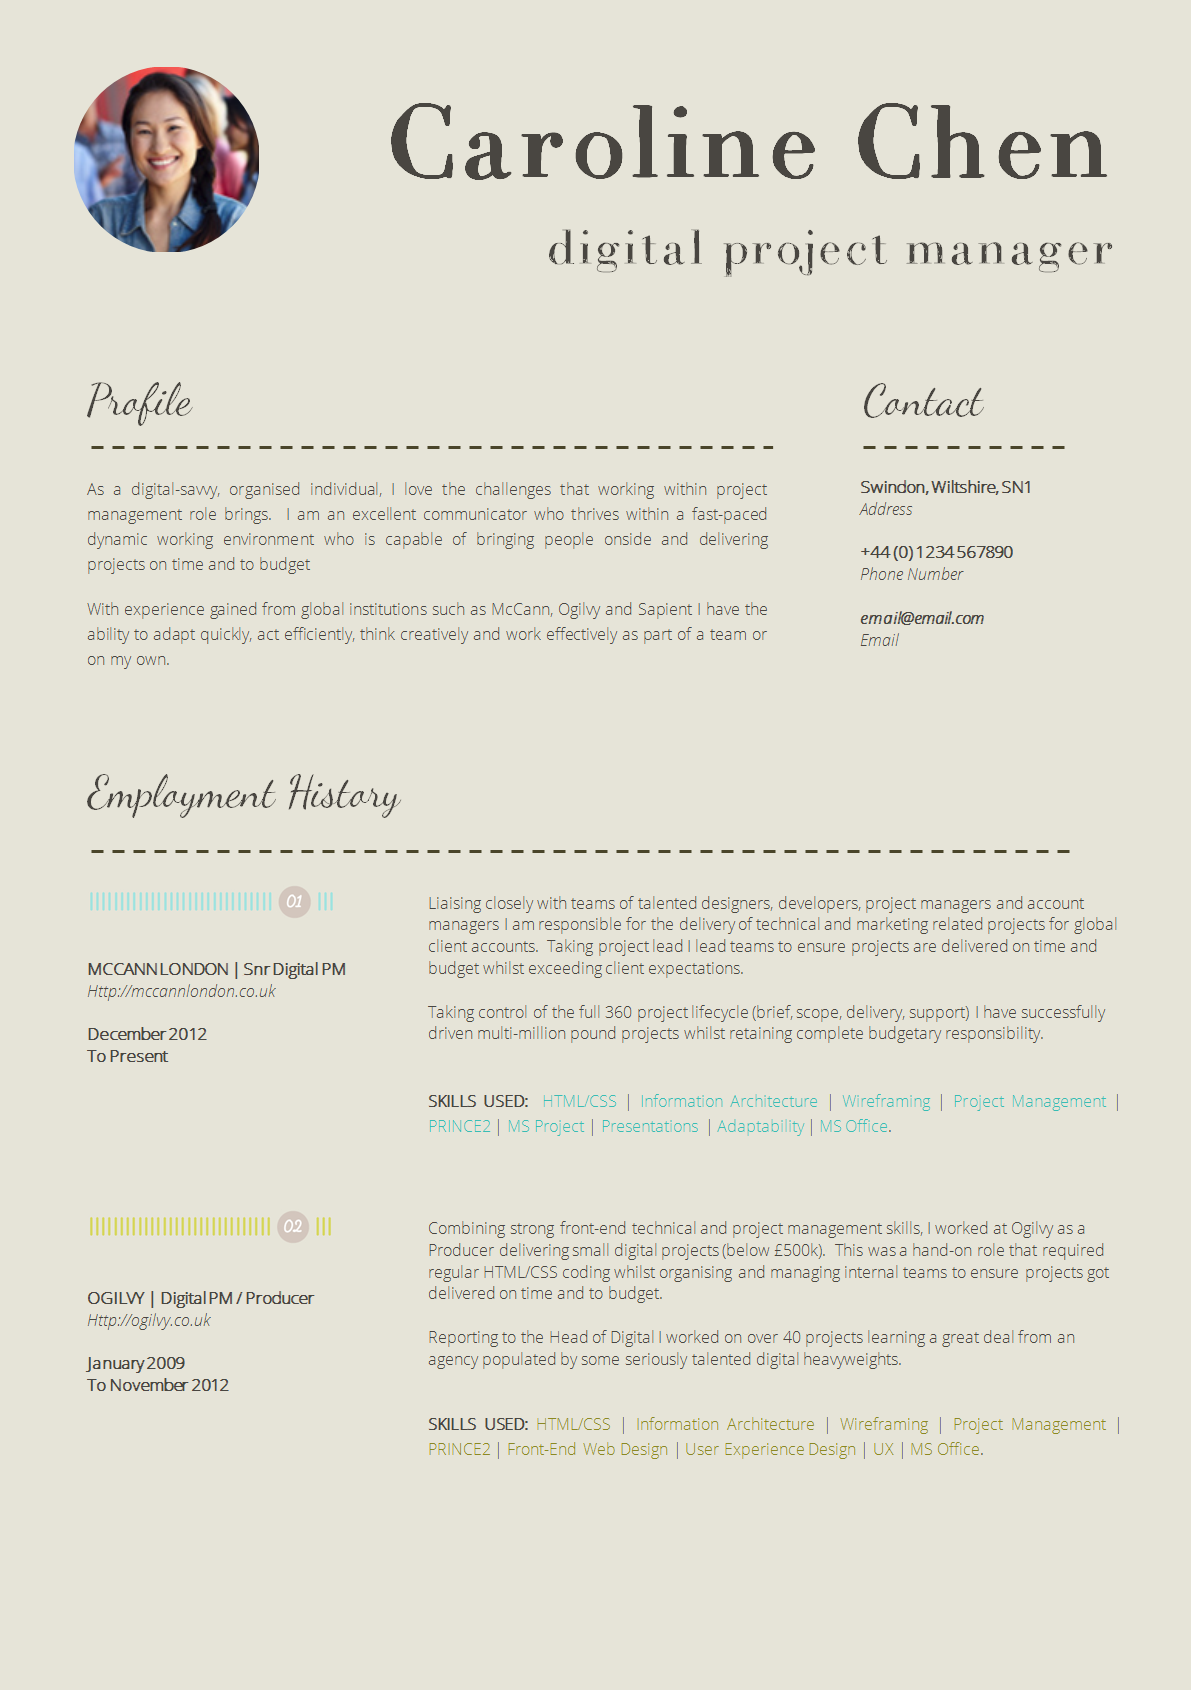 cv template - Resume Templated